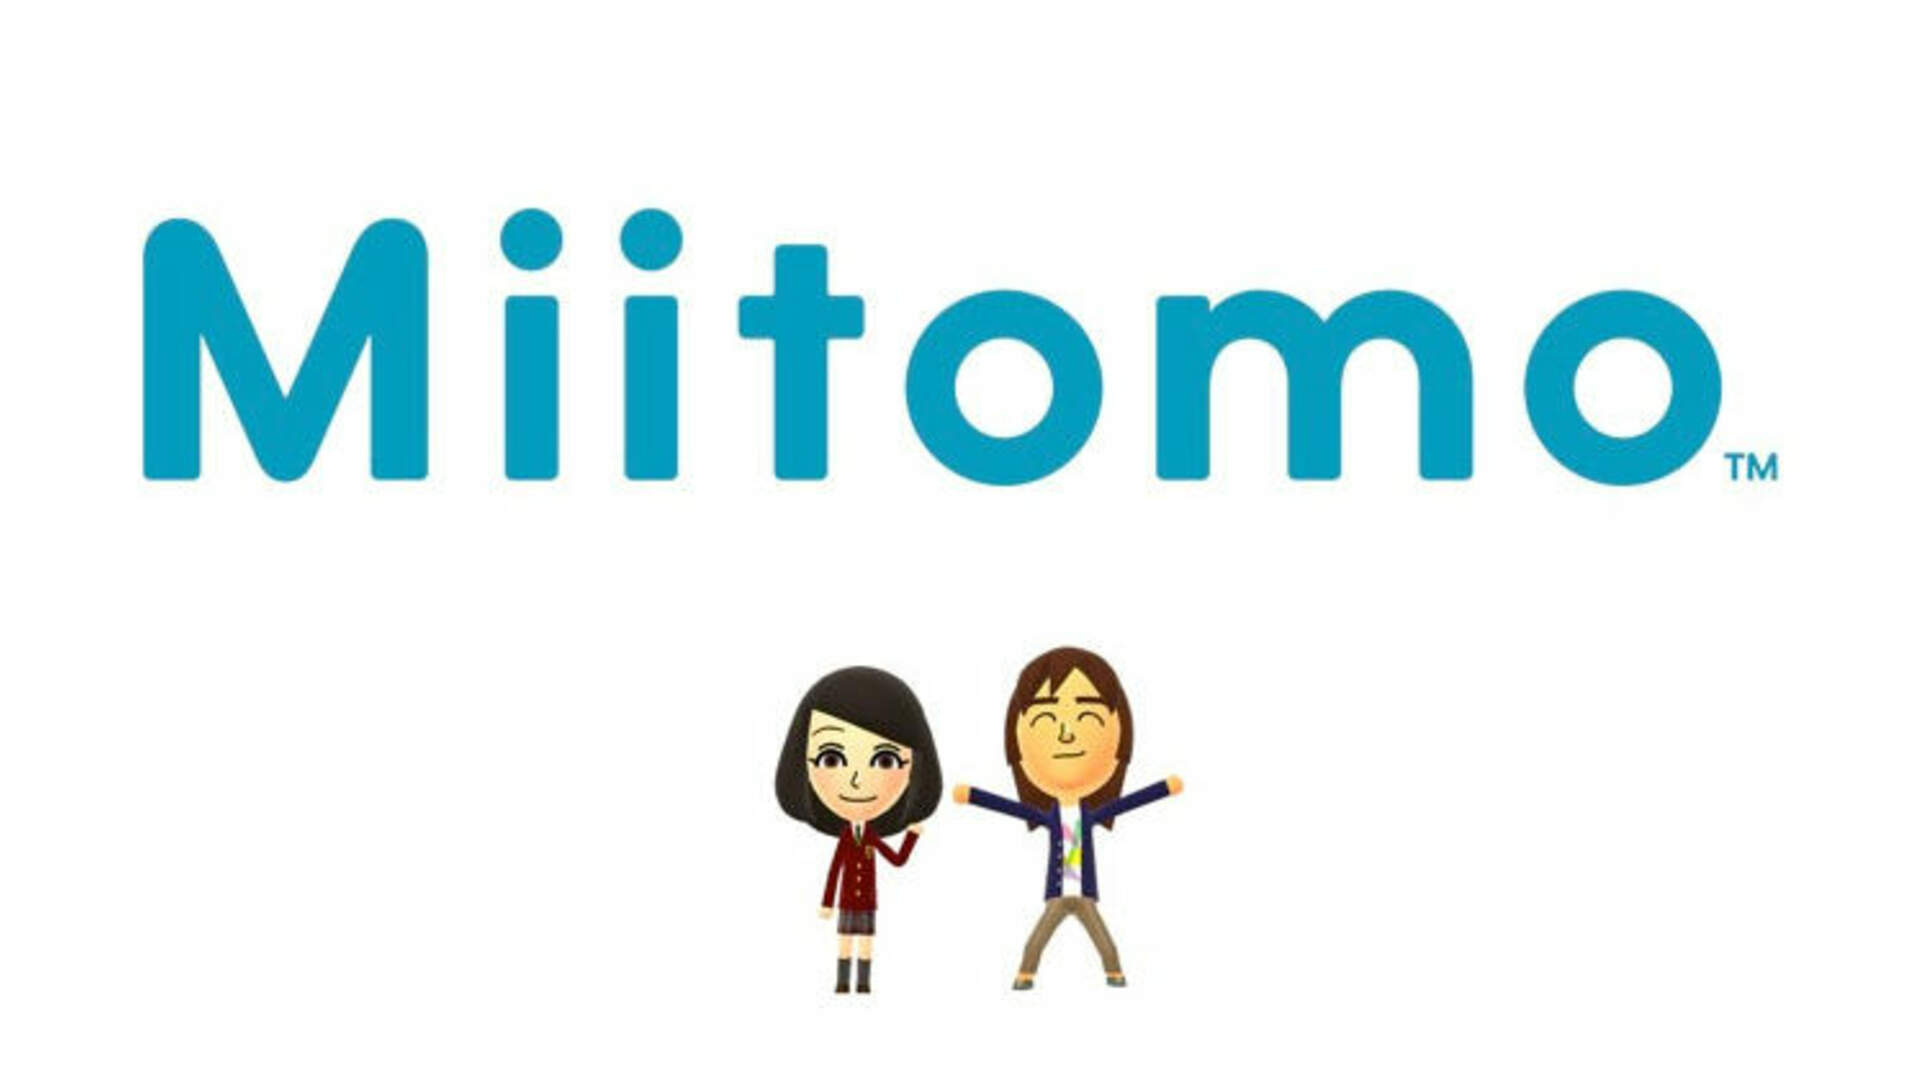 Miitomo's User Base Has Declined Sharply, But It's a Success Overall